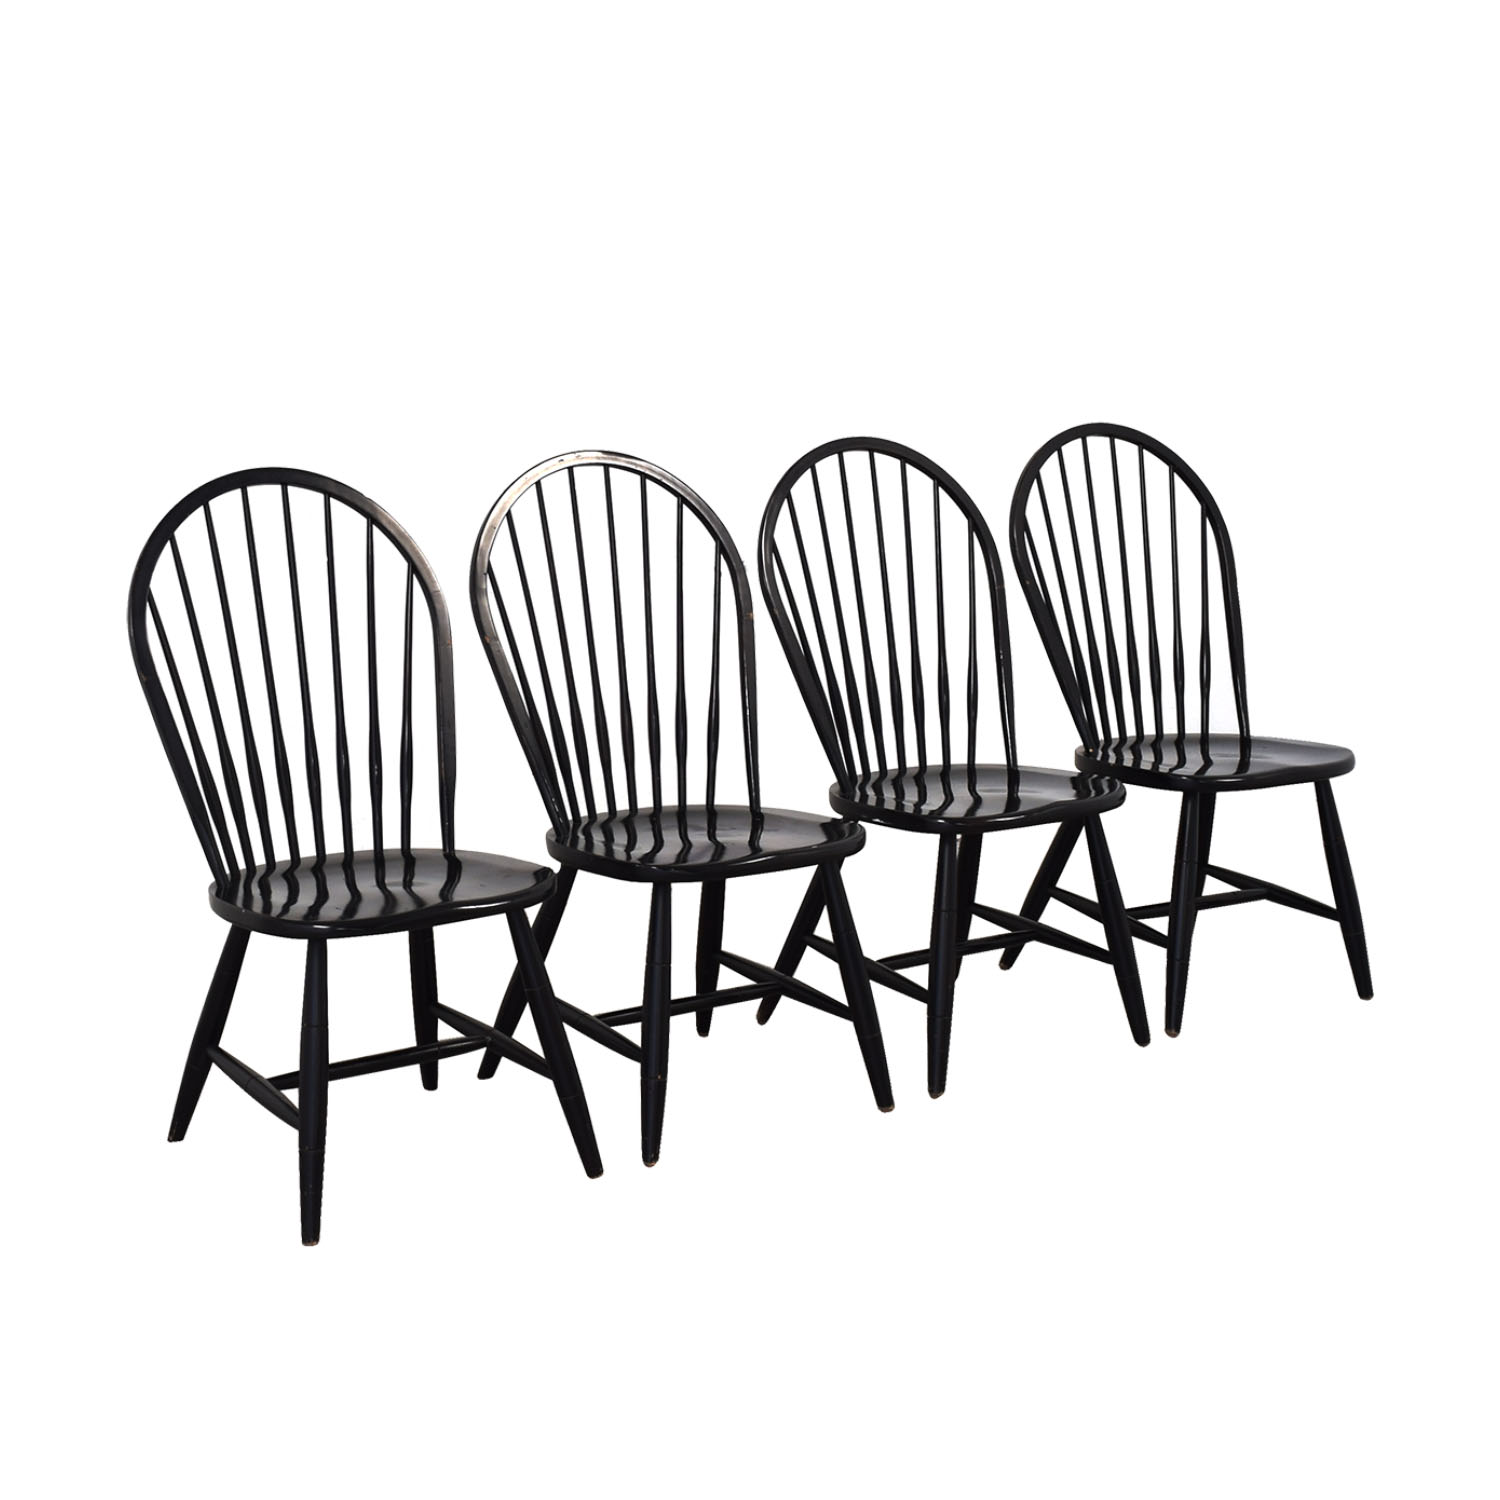 Ethan Allen Ethan Allen Dining Chairs price